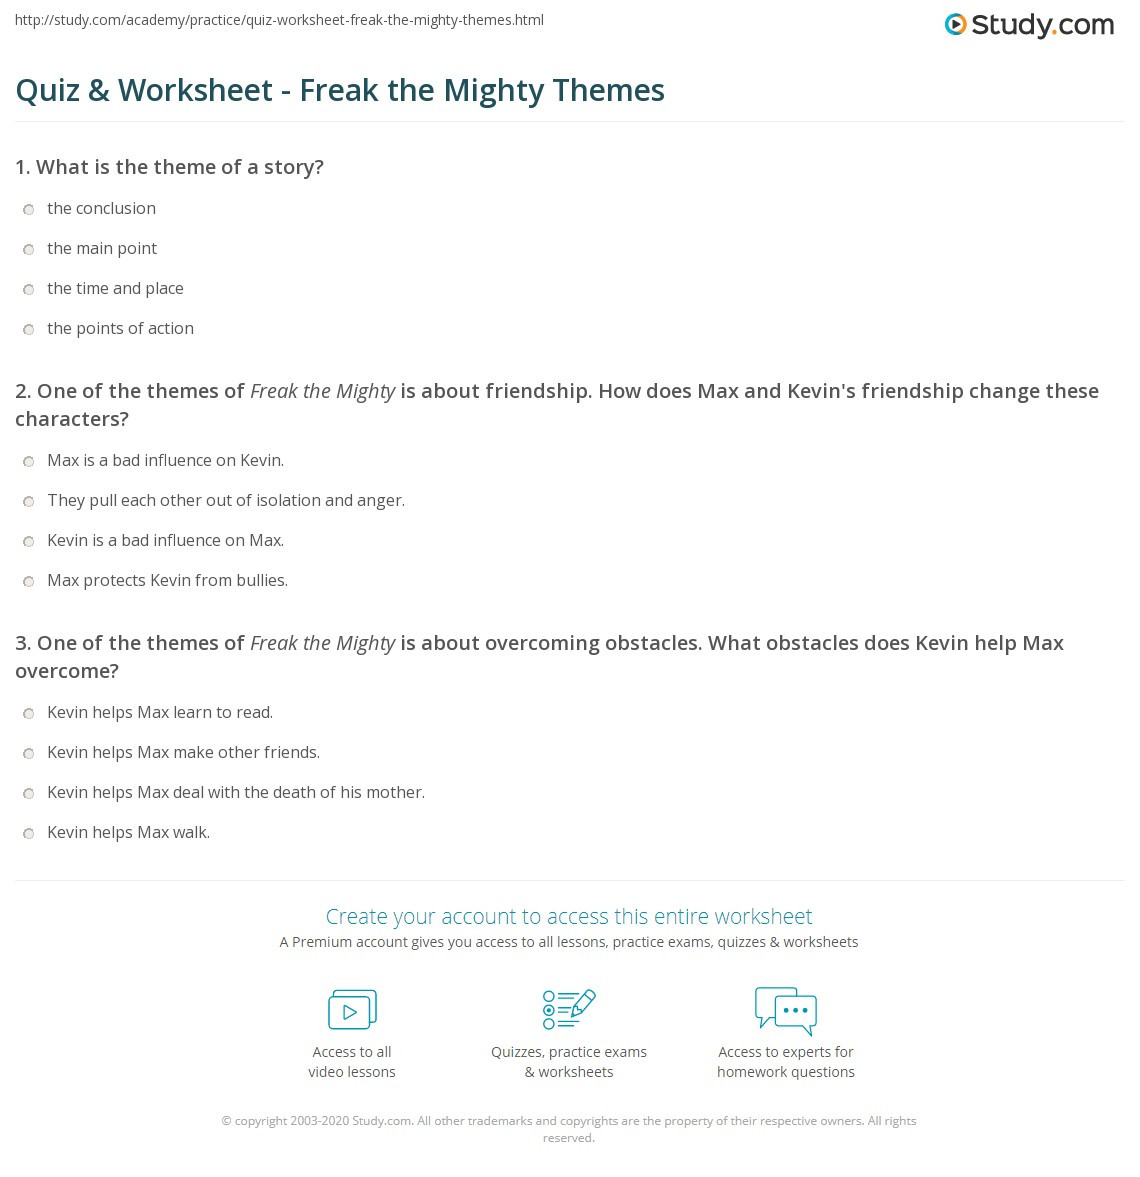 Theme Worksheet Middle School Quiz & Worksheet Freak the Mighty themes